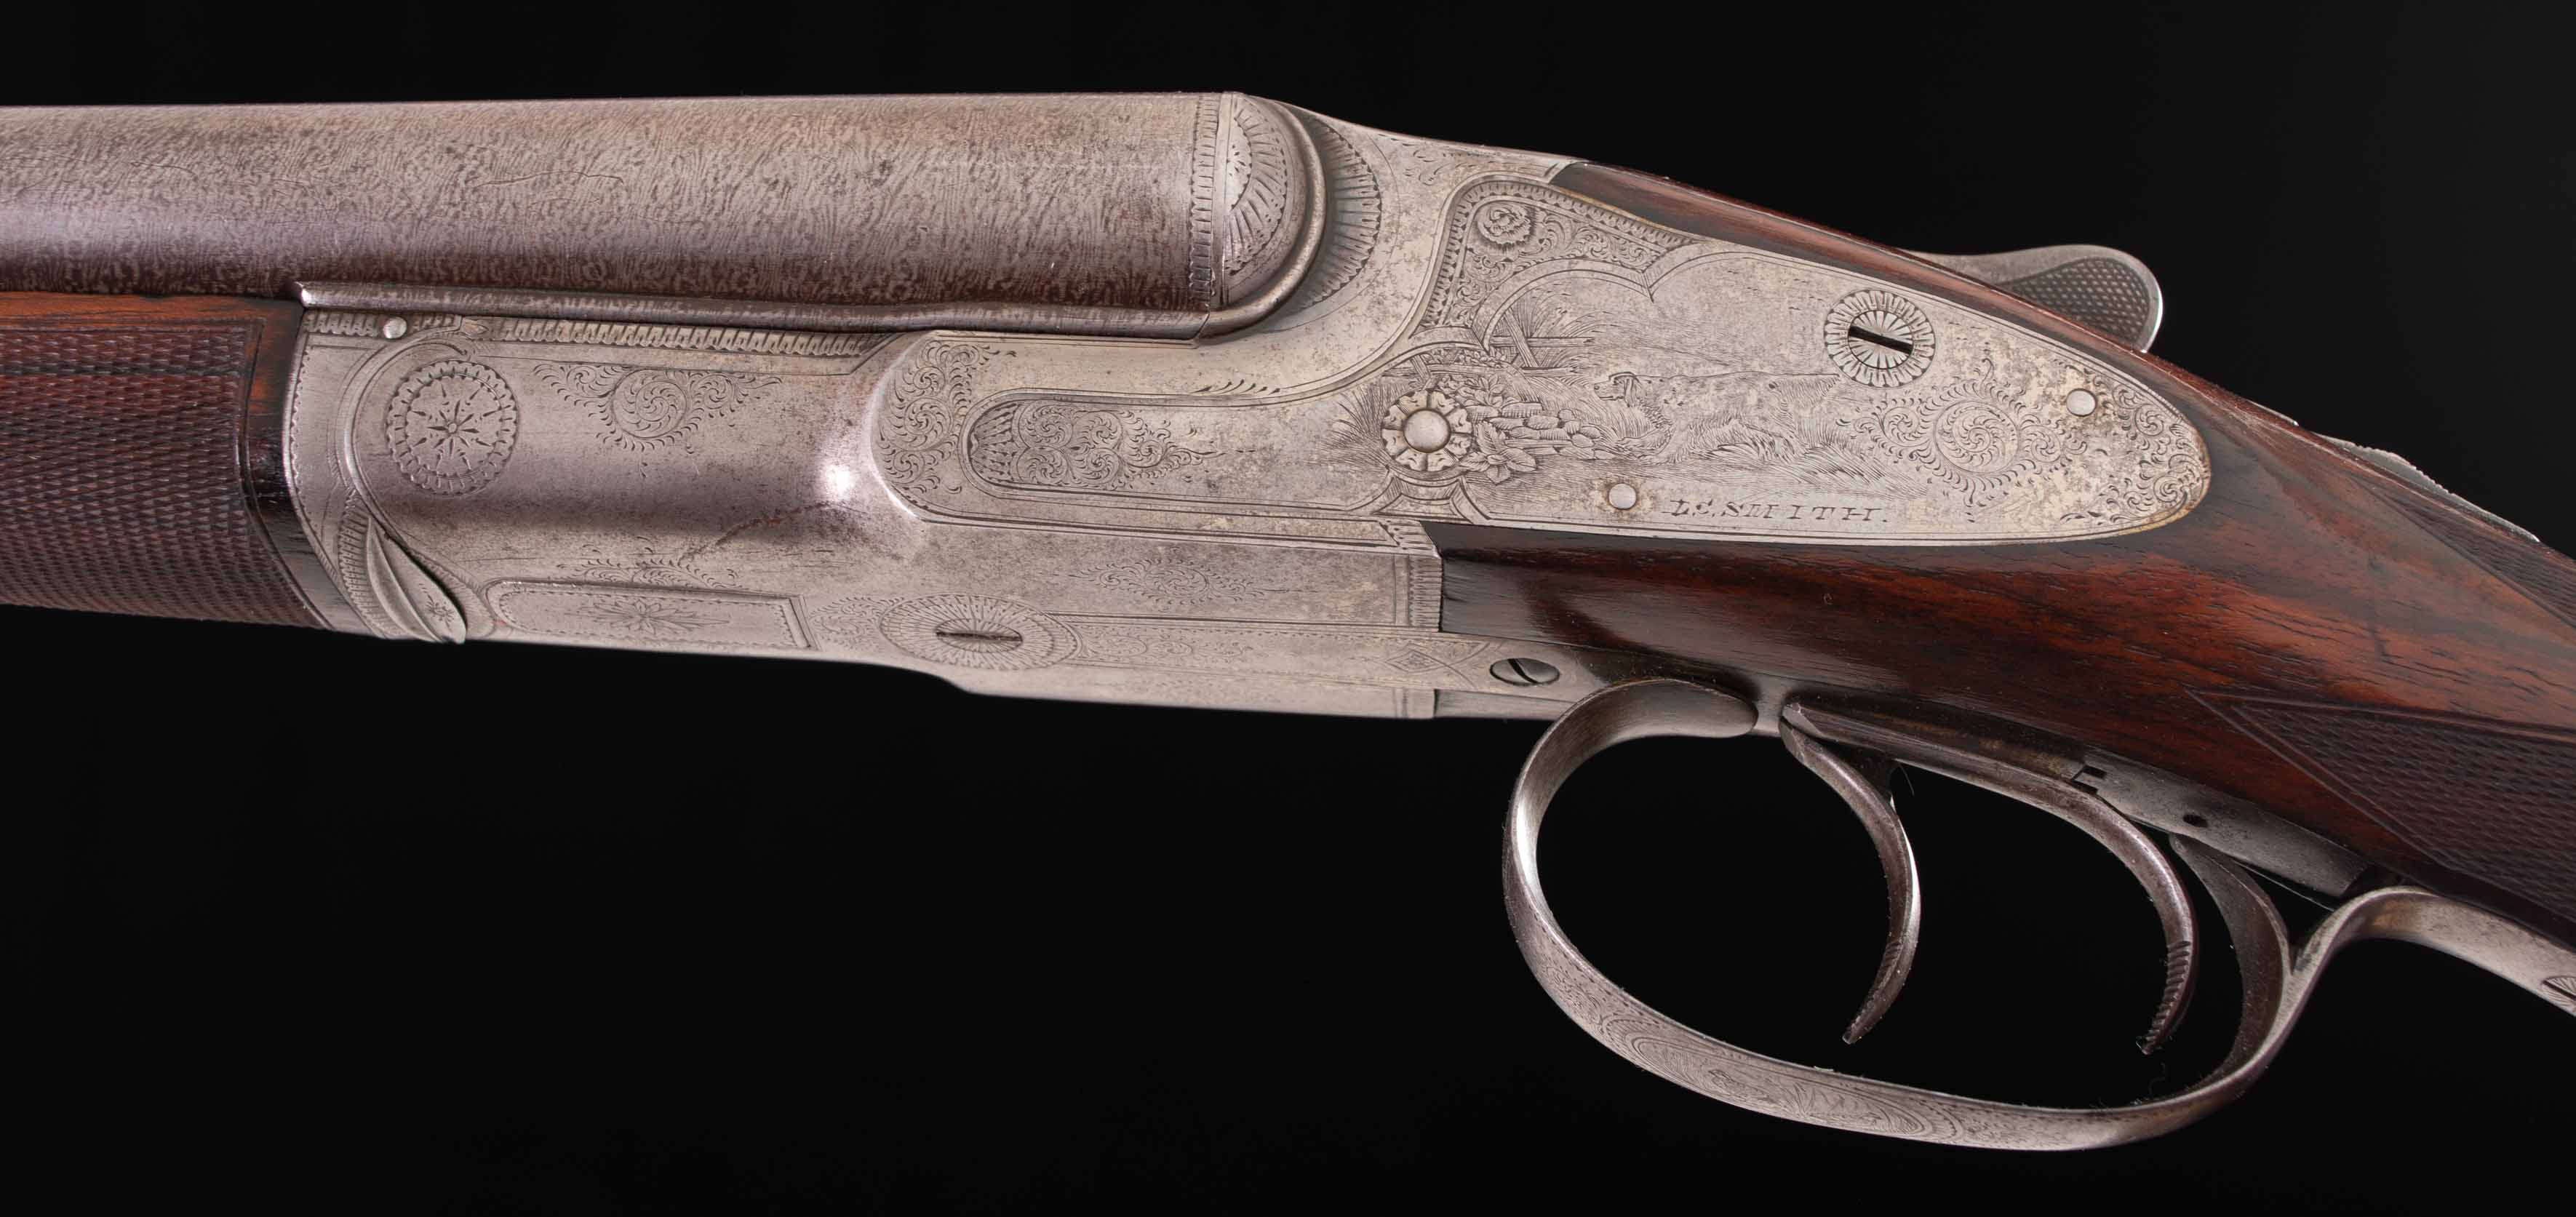 "L.C. Smith Quality A-1 Shotgun - RARE 16 Gauge, 1 OF 10 MADE, FIGURED ENGLISH WALNUT, 28"" DAMASCUS"